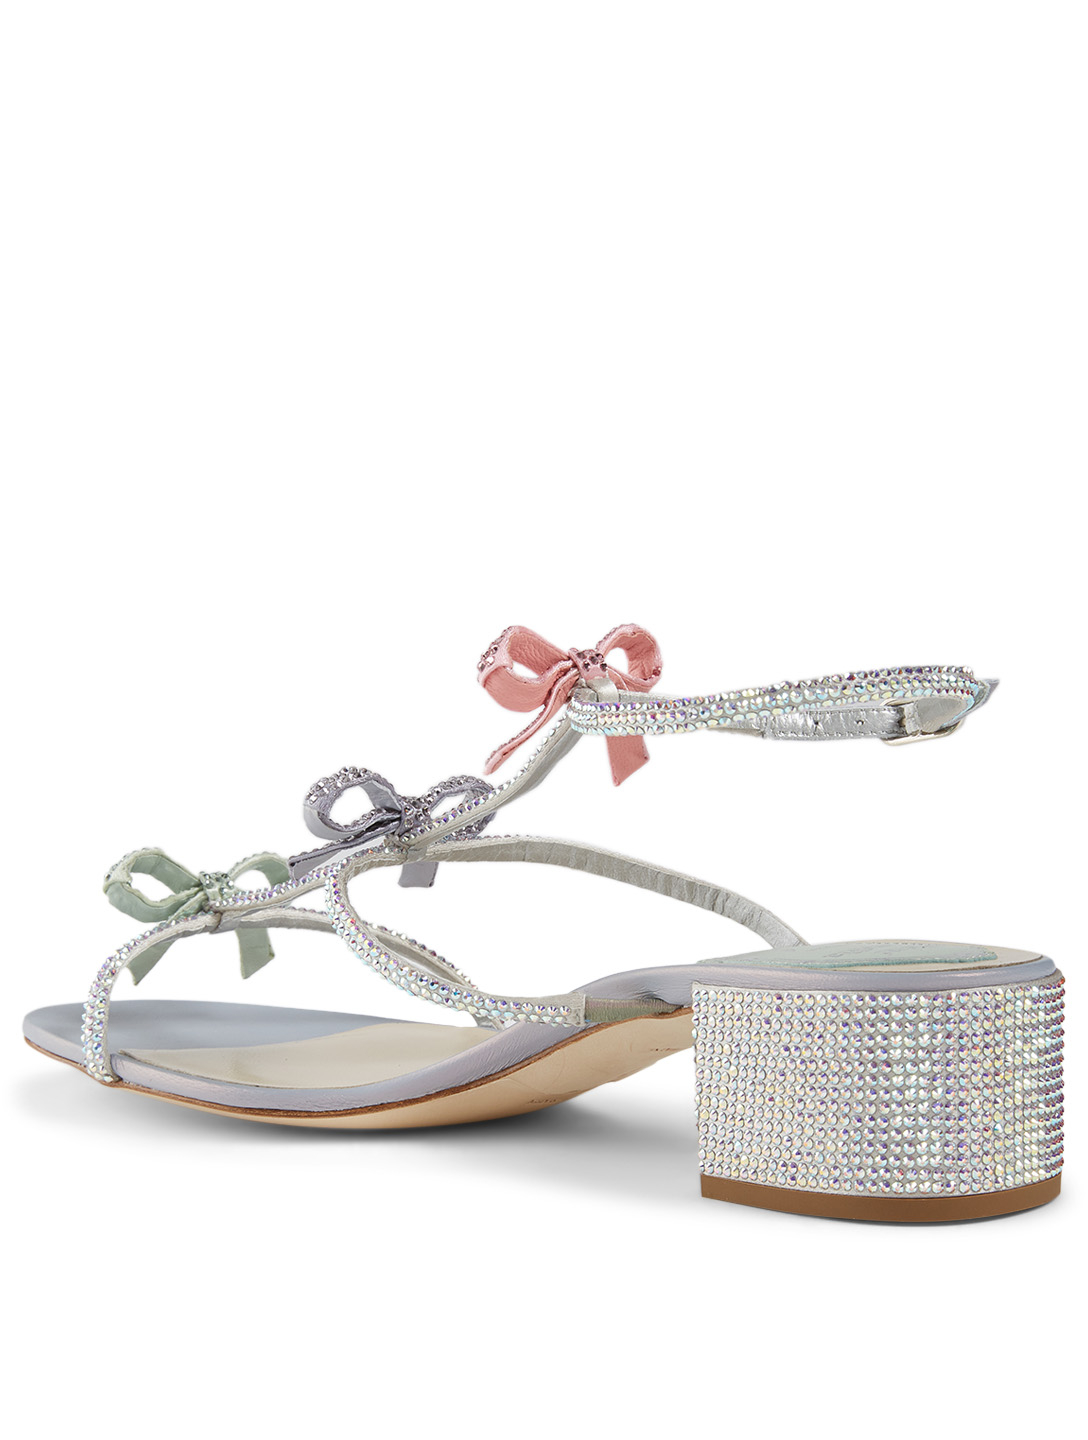 RENE CAOVILLA Caterina 40 Crystal Satin Heeled Sandals Women's Grey